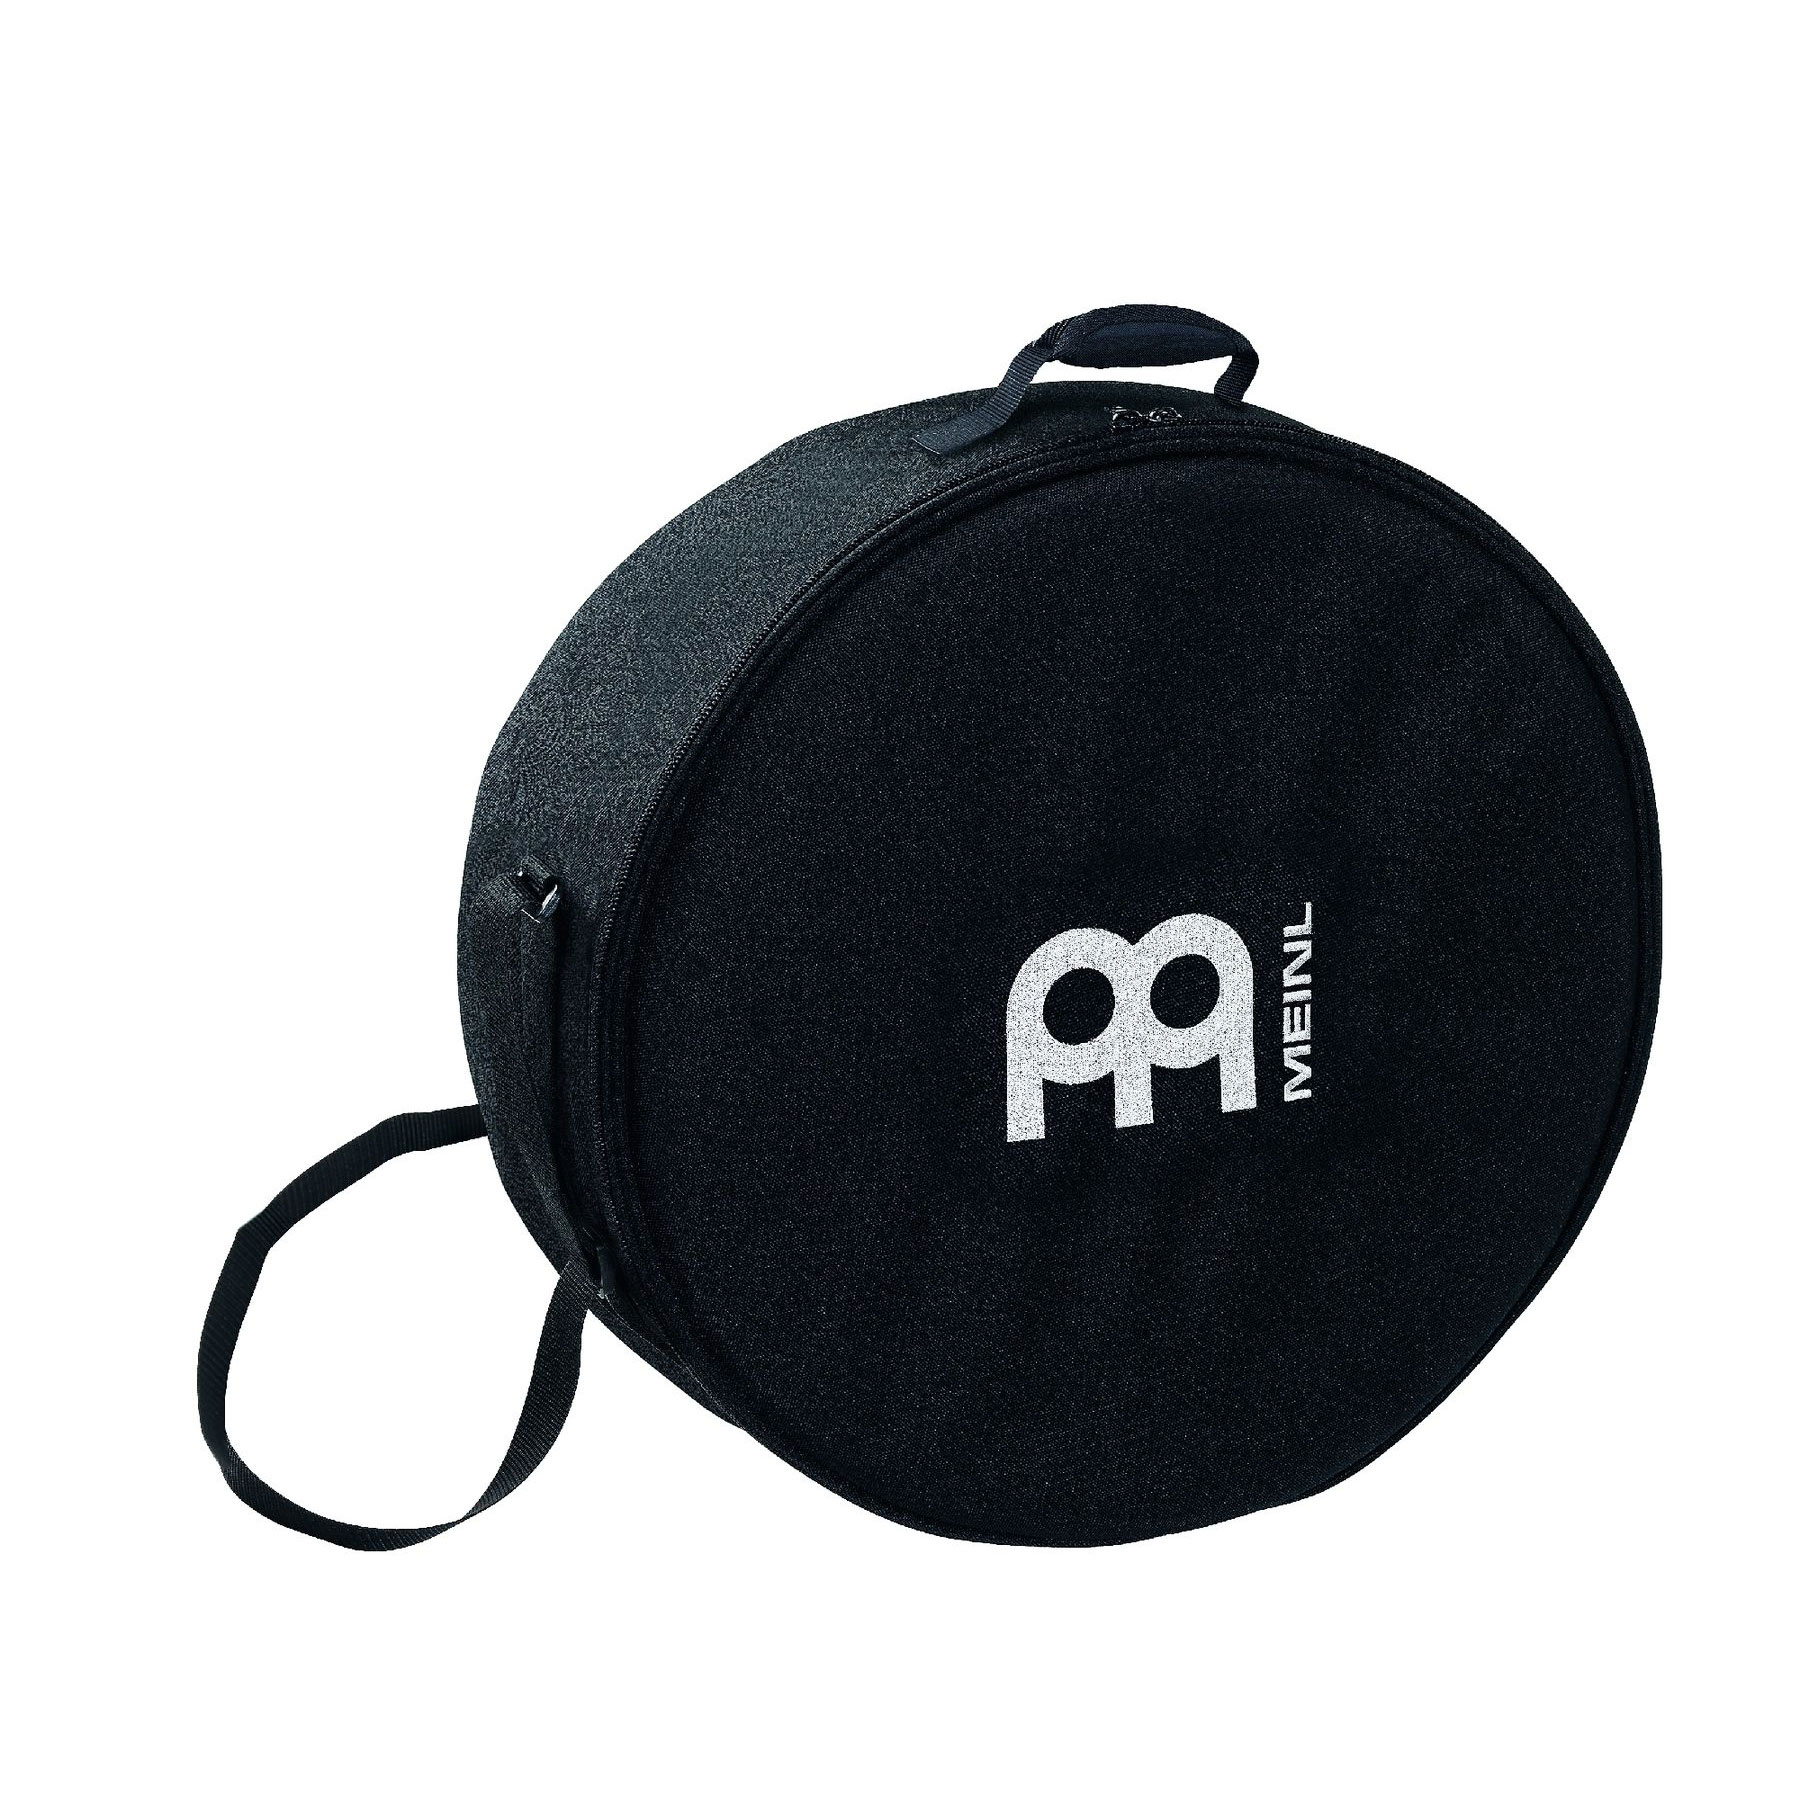 "Meinl 14"" (Diameter) Professional Bendir Drum Bag"